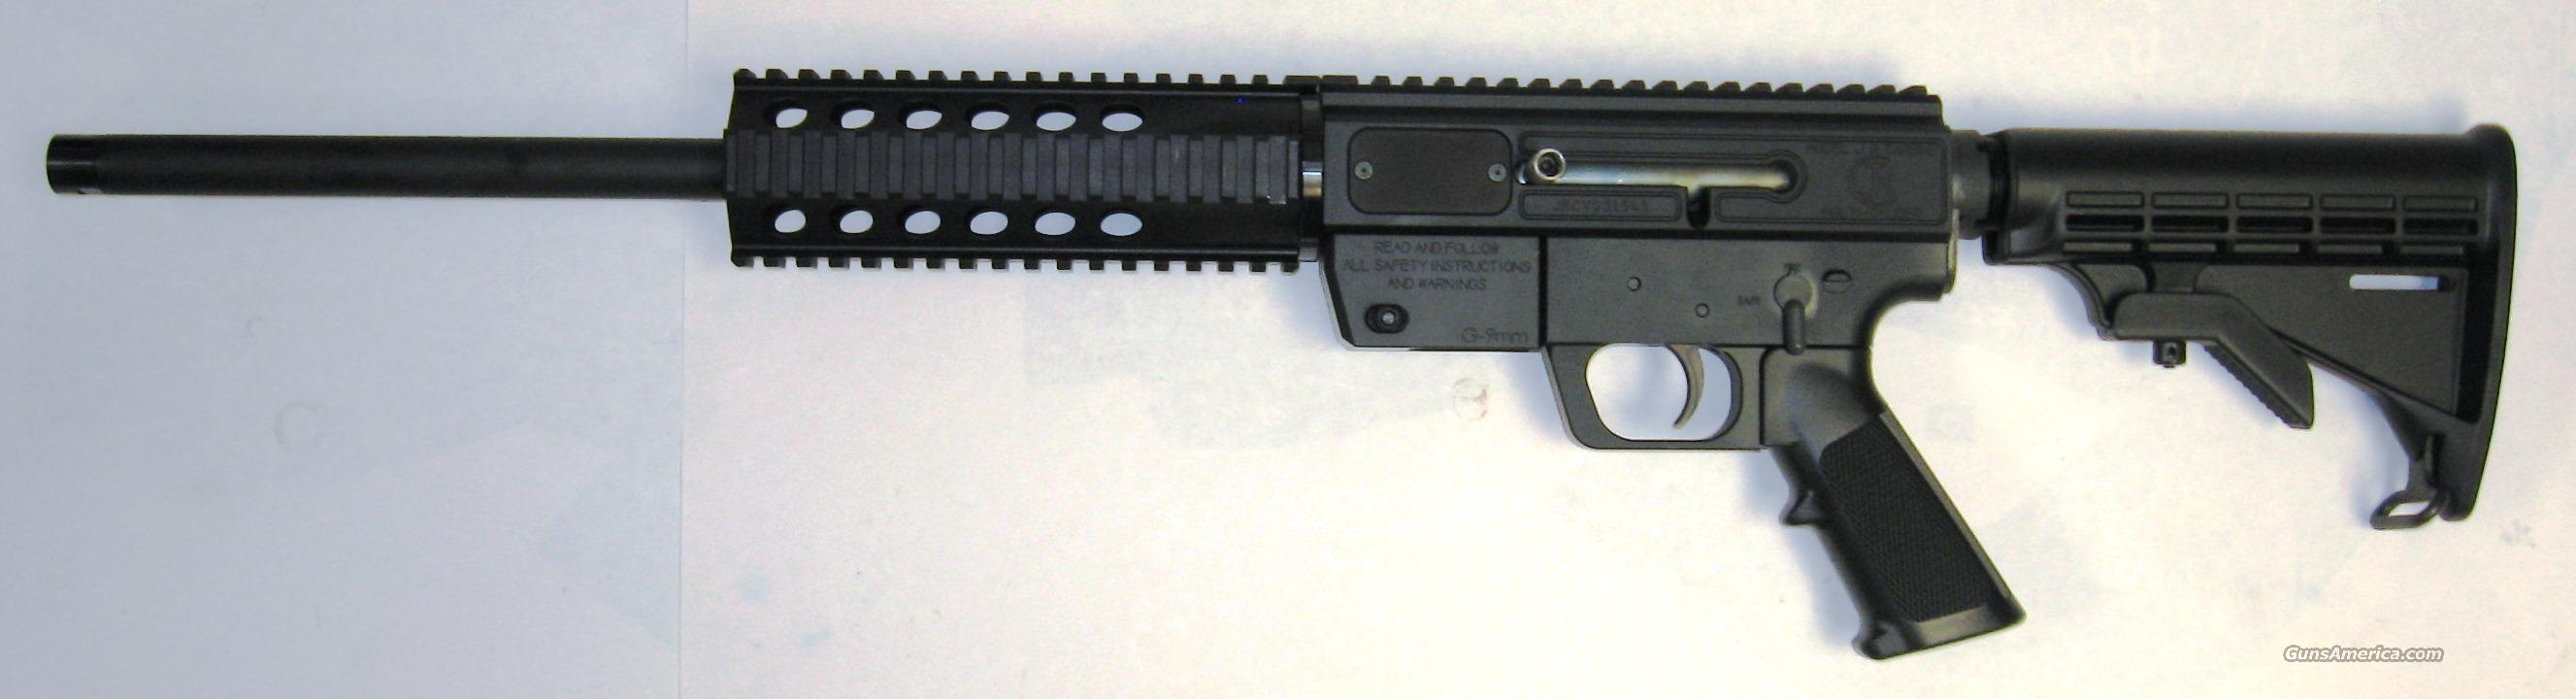 Just Right Carbine JR Carbine 9MM  Guns > Rifles > IJ Misc Rifles